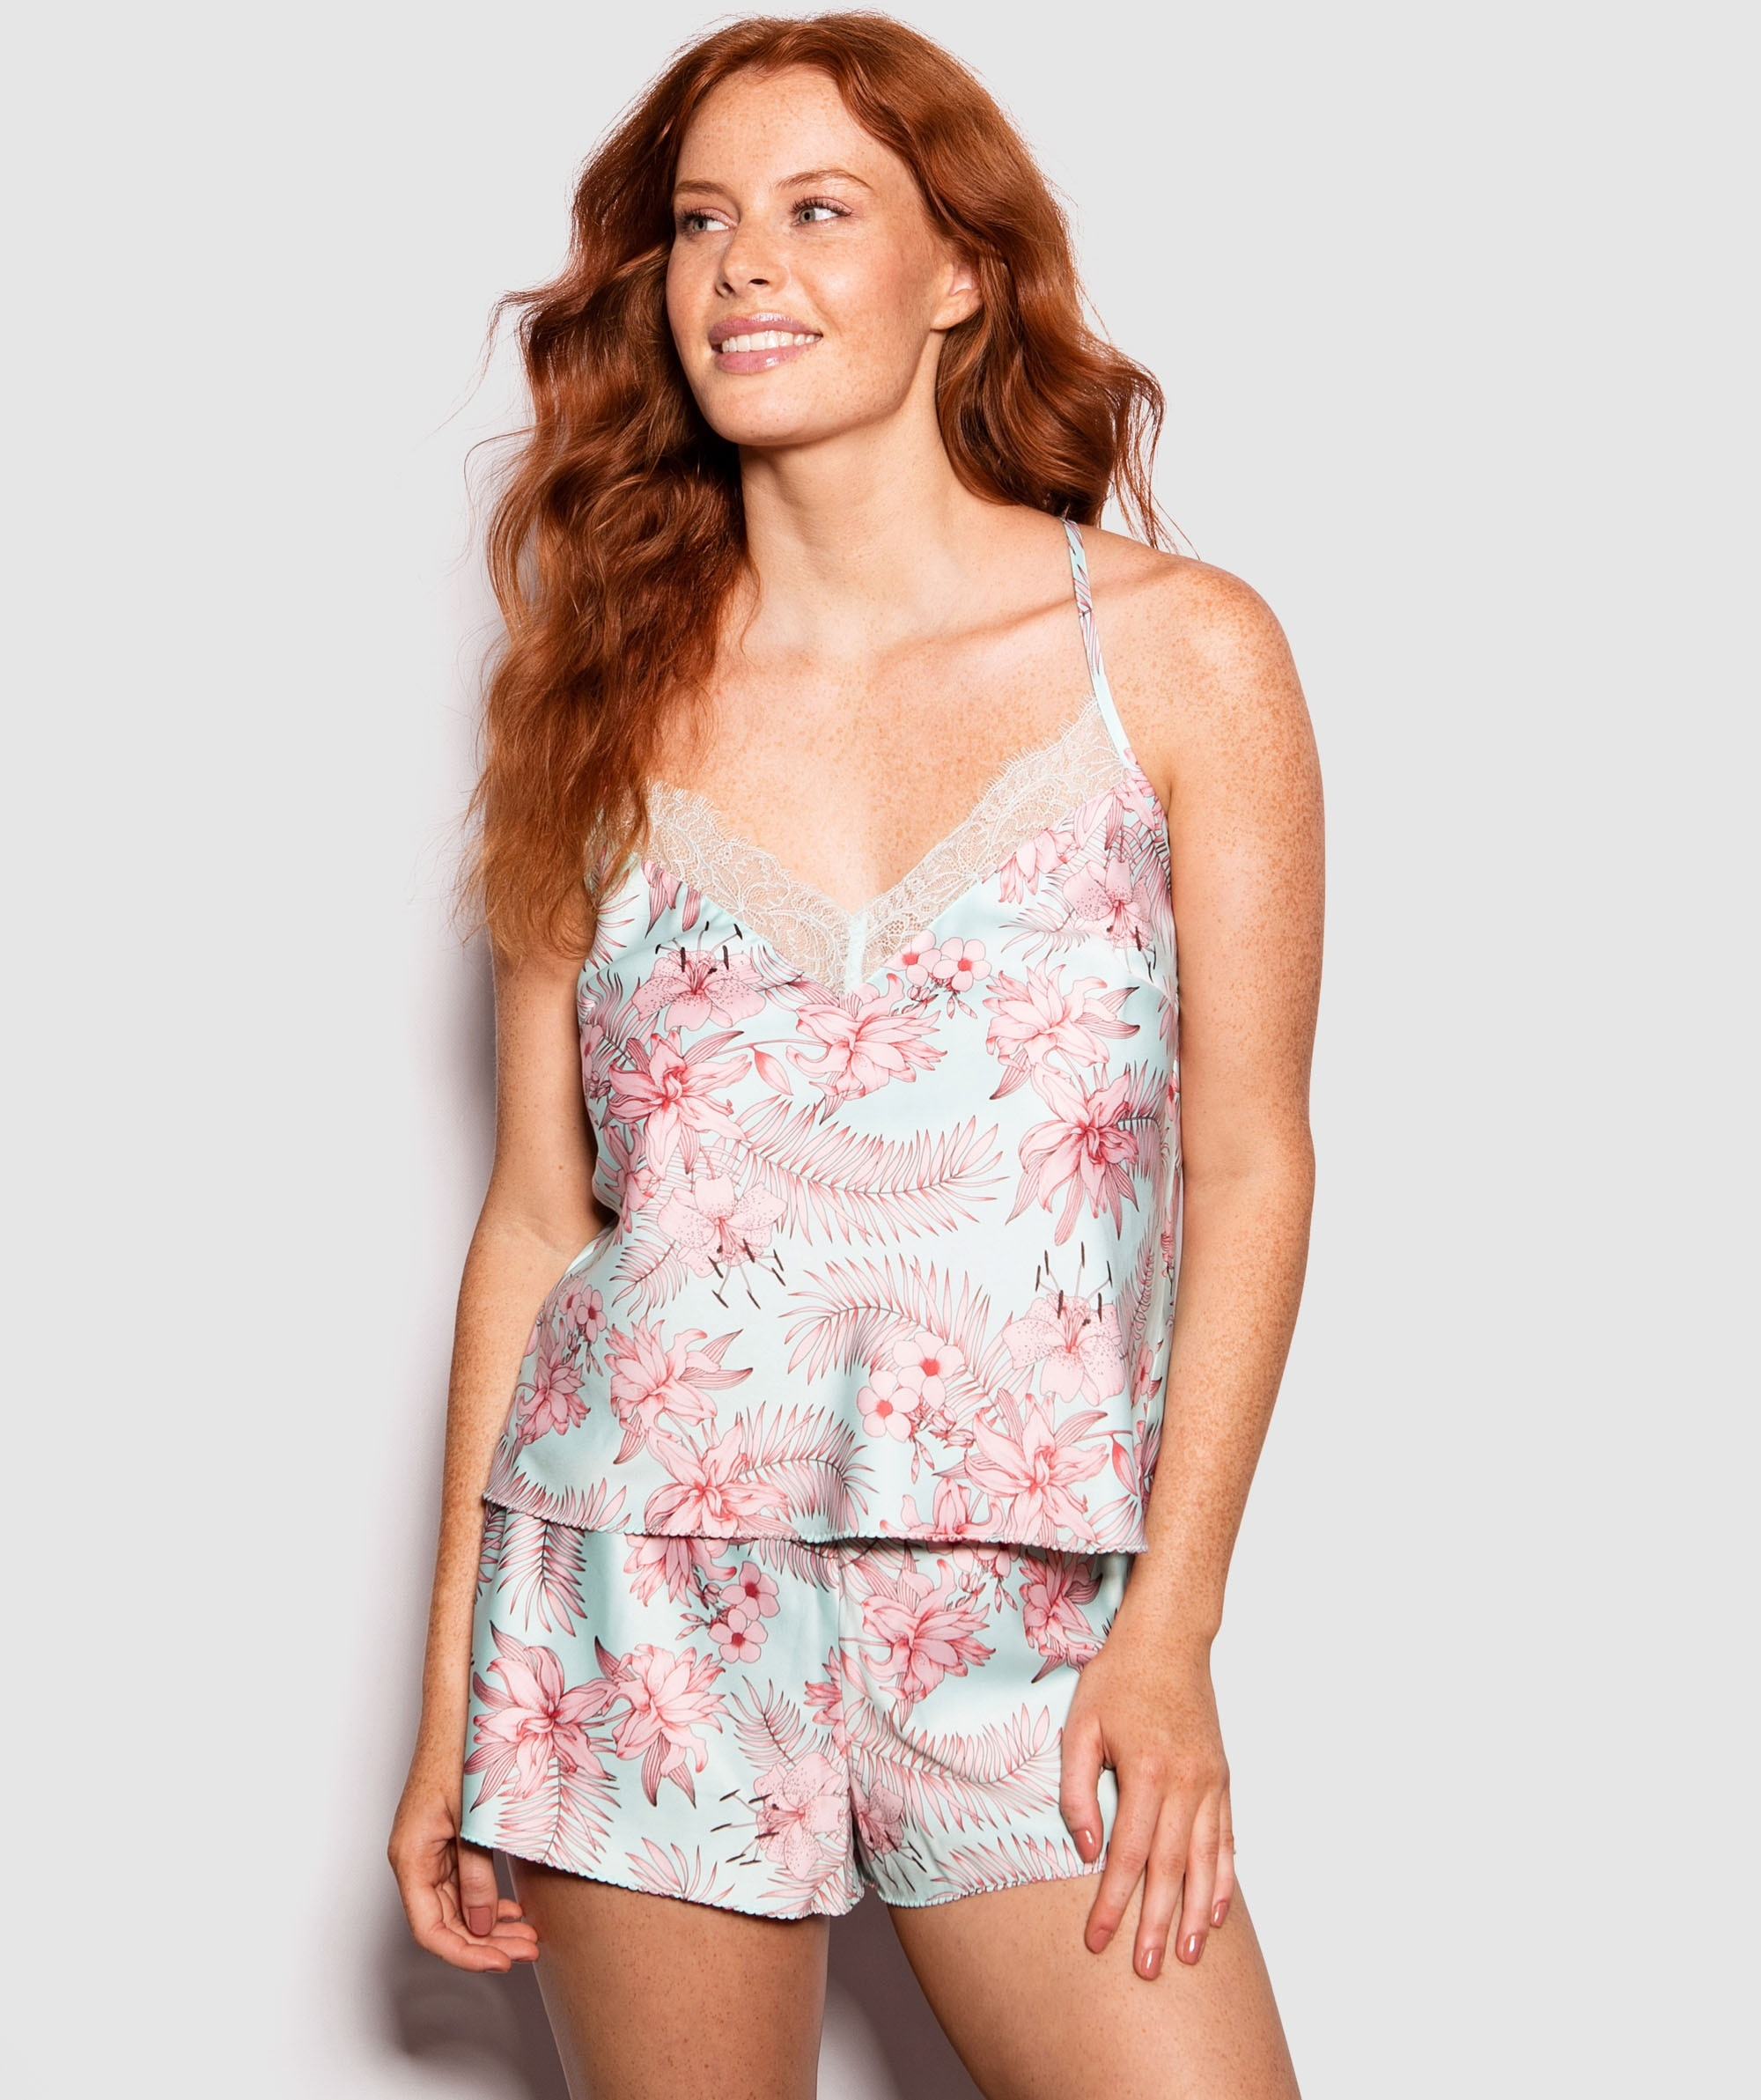 Minty Cami - Floral Print